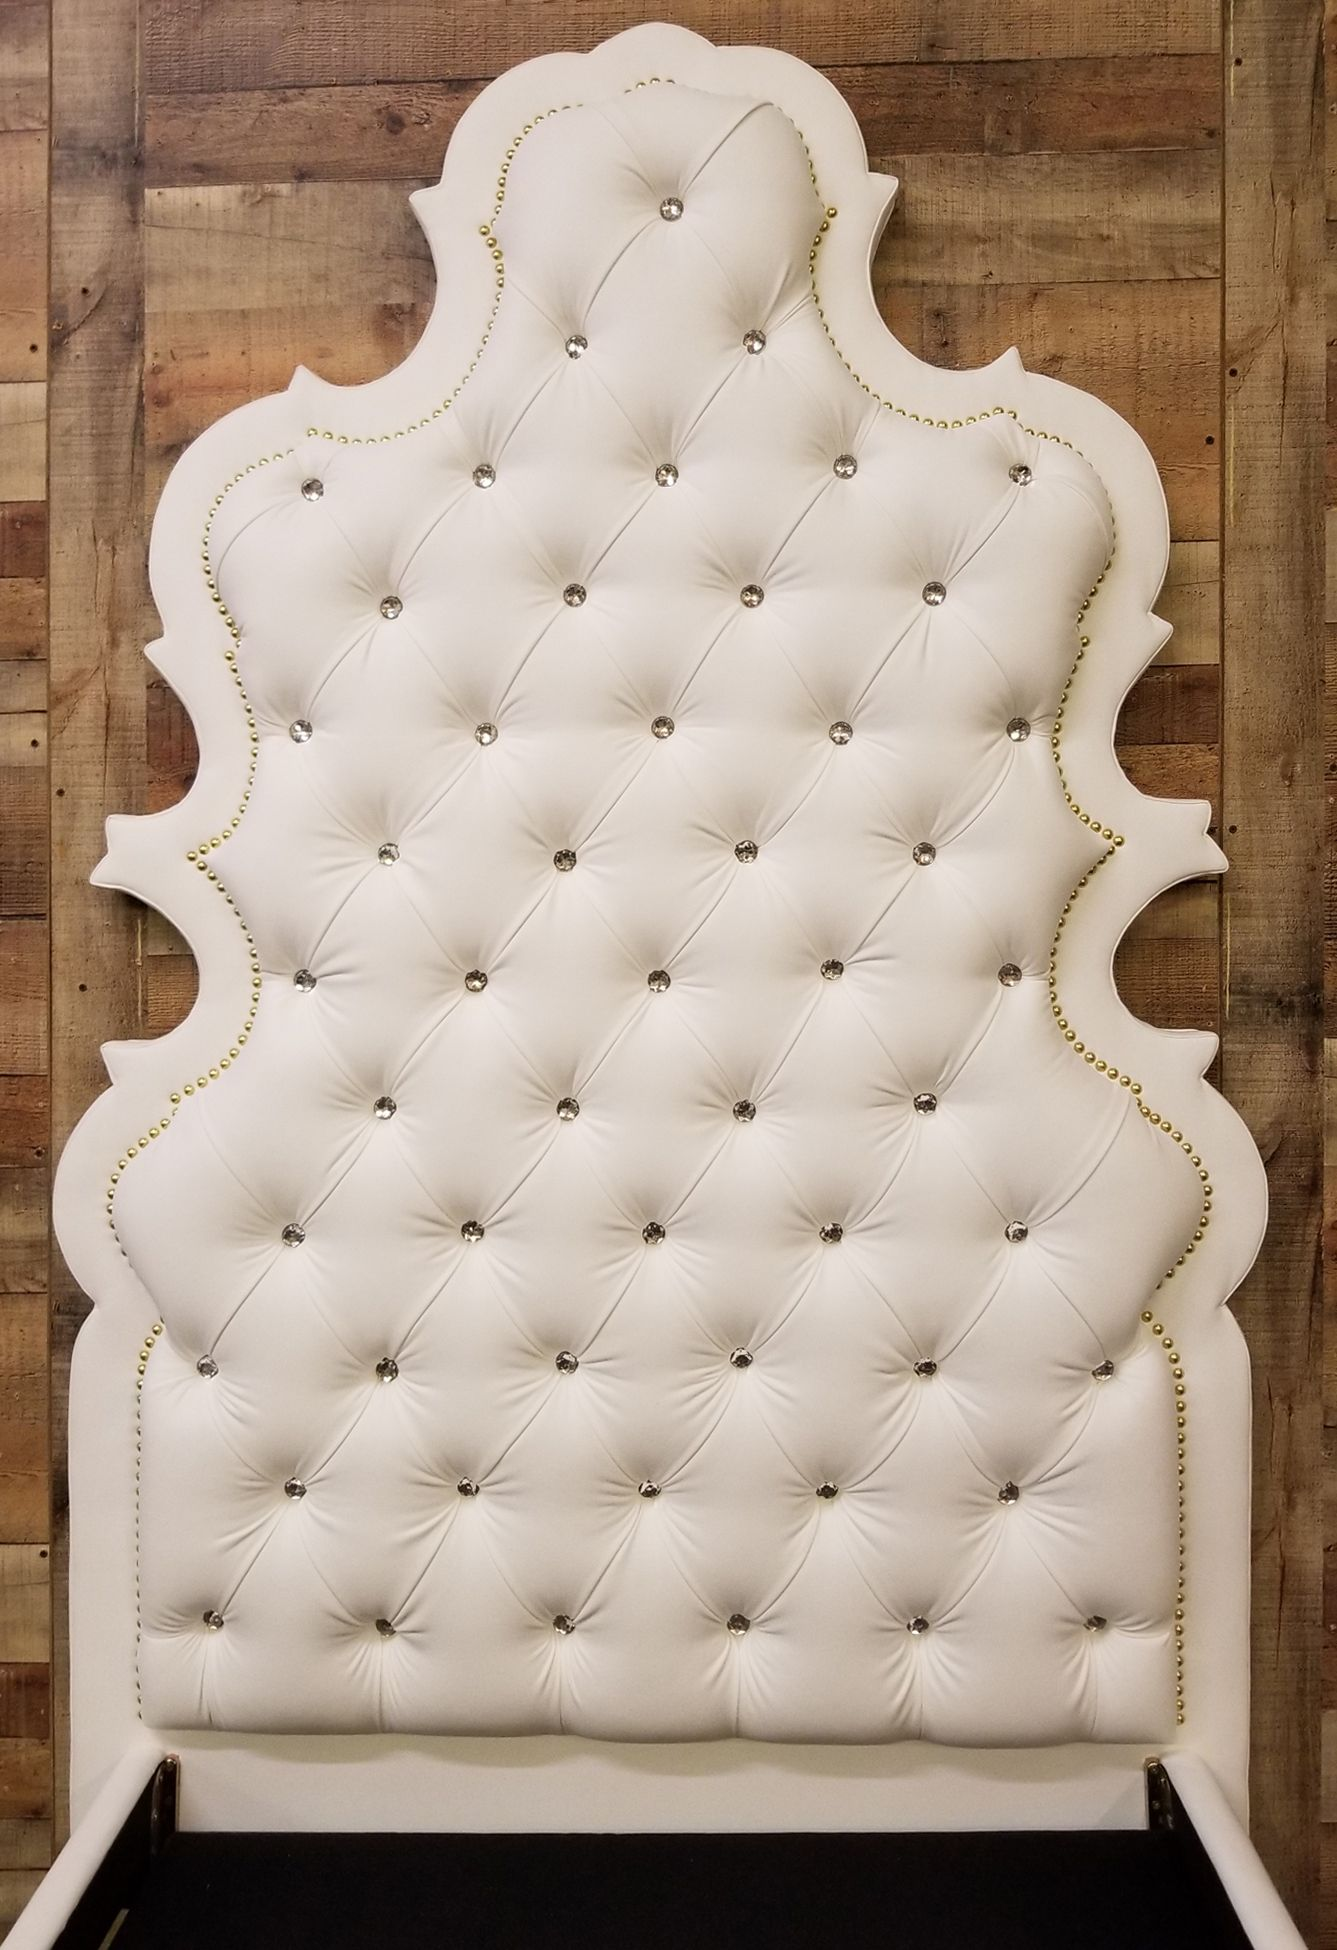 Upholstered In A White Faux Leather Deep Button Tufted Headboard